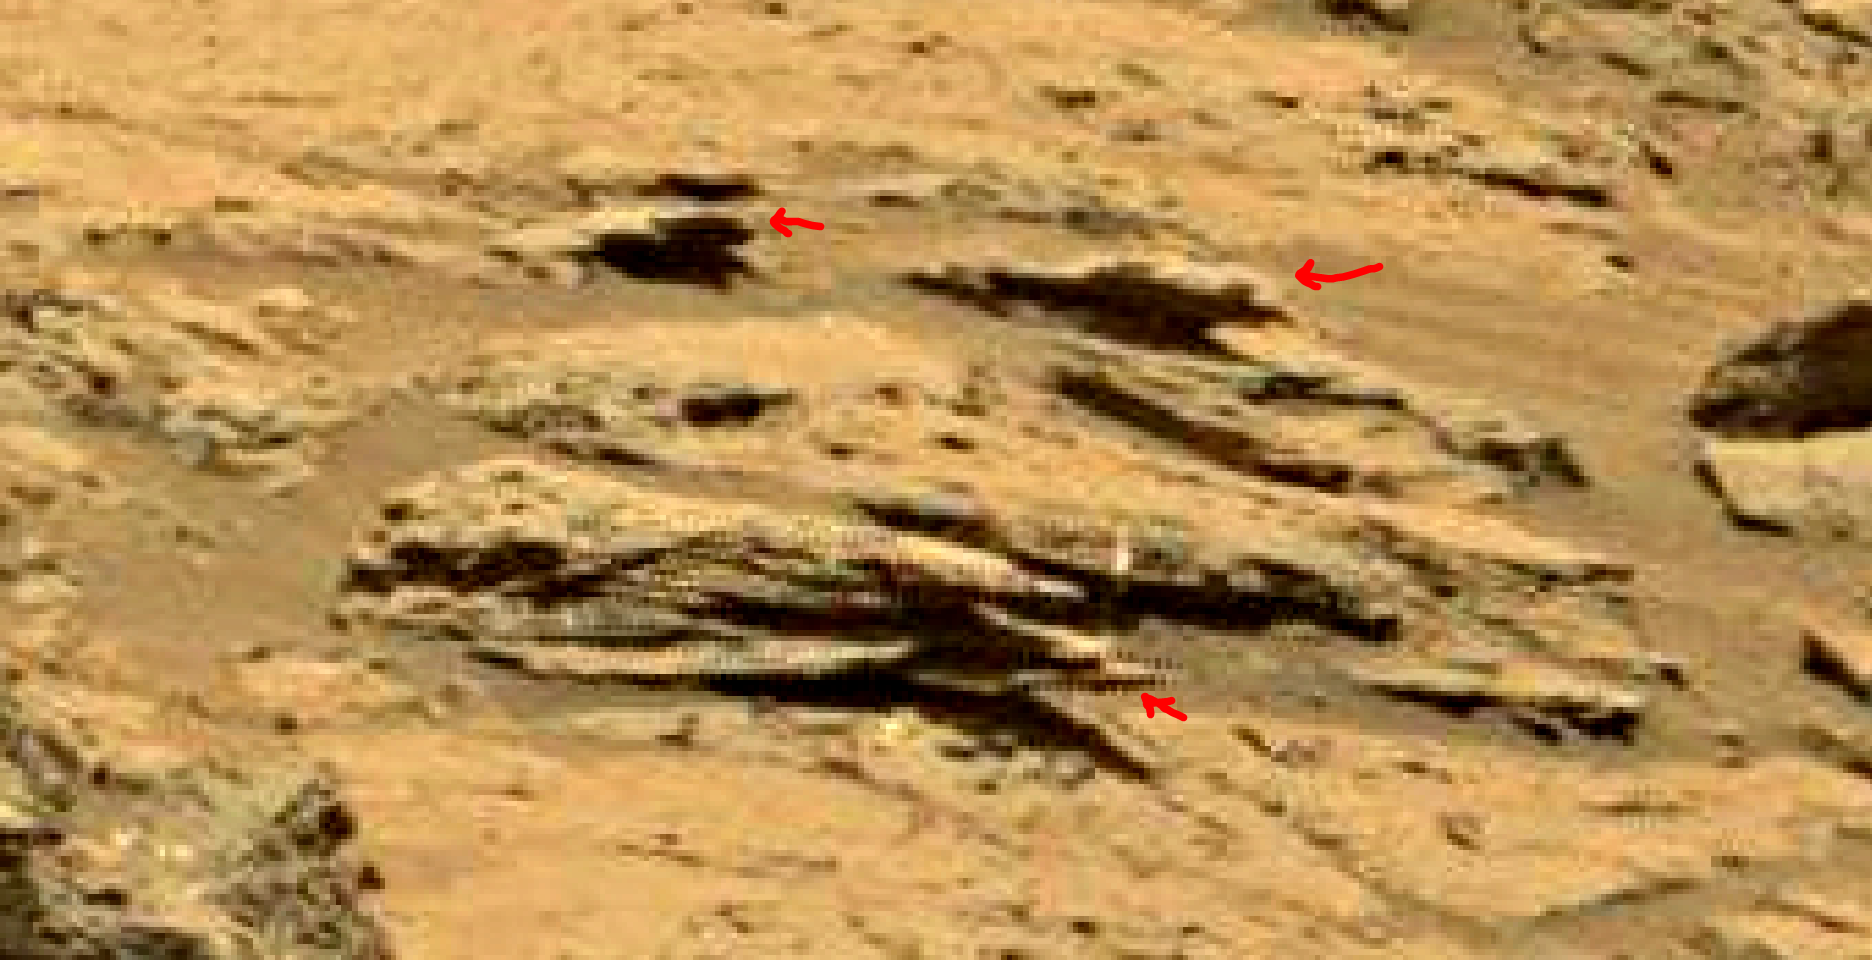 mars sol 1353 anomaly-artifacts 49 was life on mars